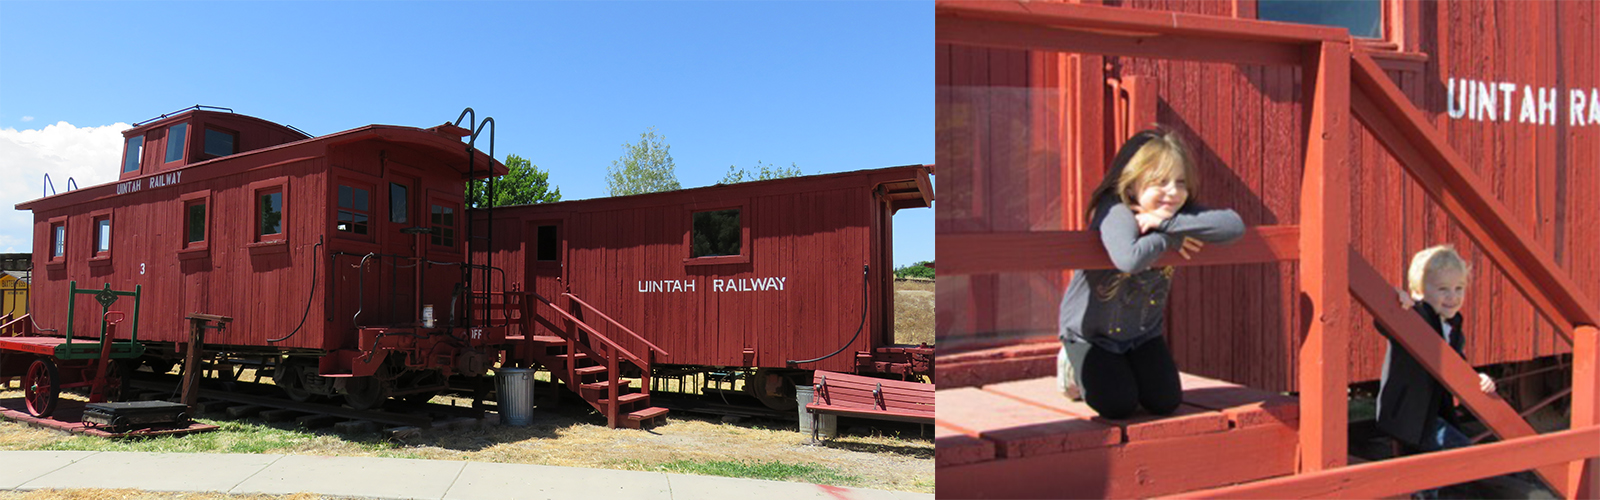 Uintah Train Exhibit